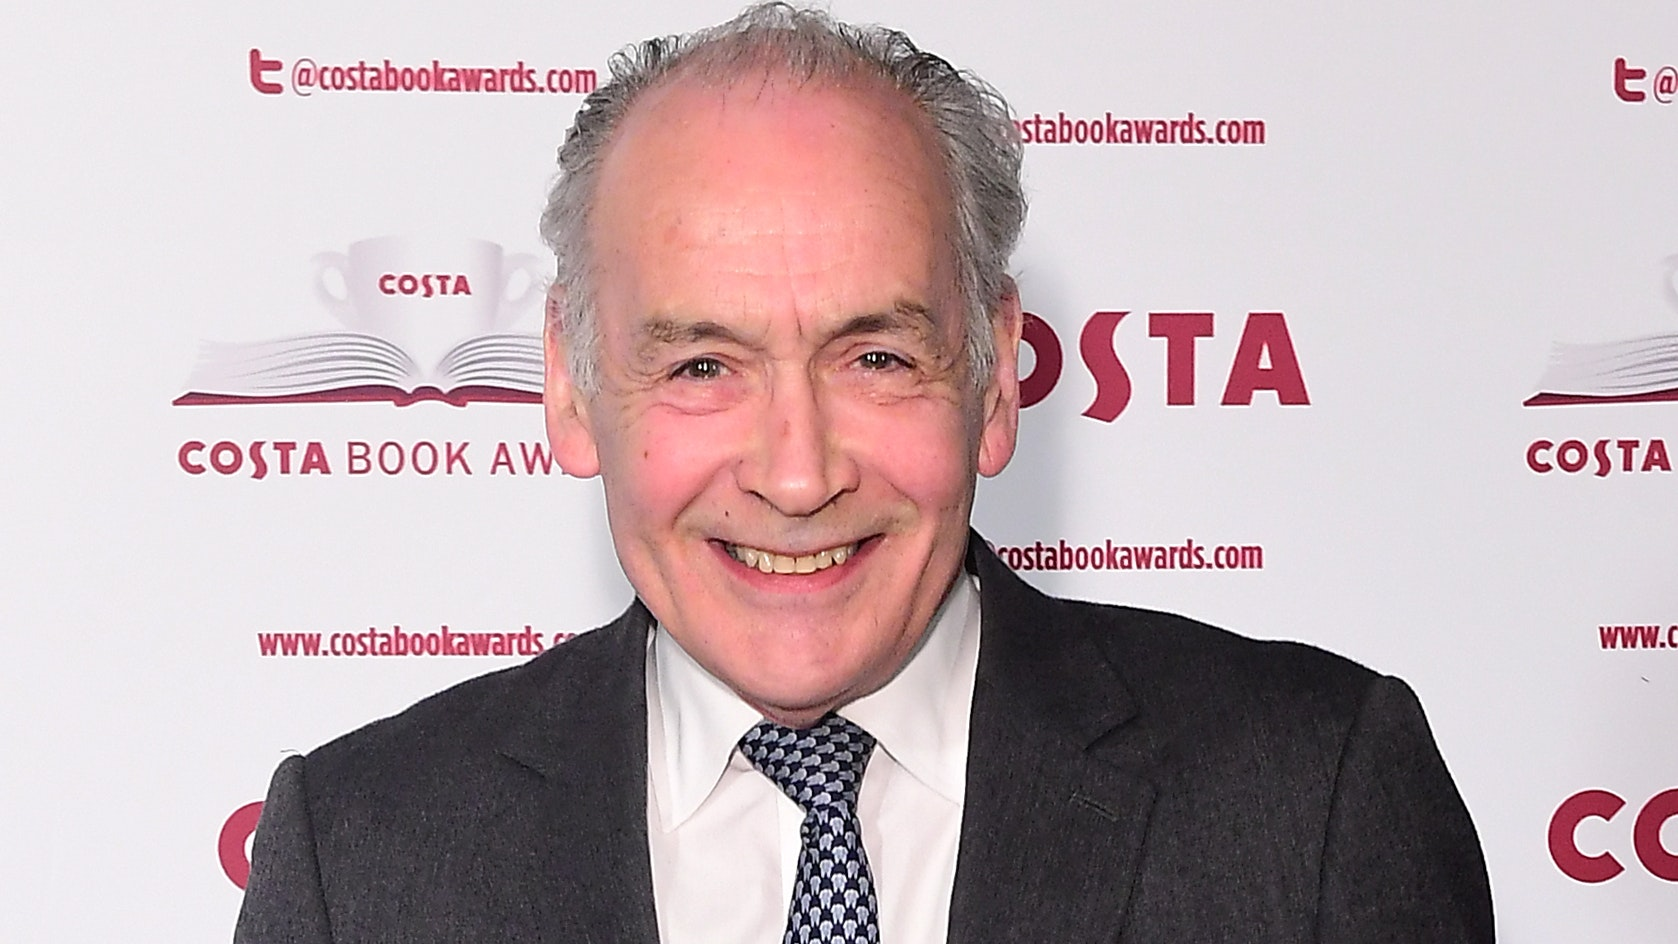 Broadcasters speak up for Alastair Stewart after ITV News exit